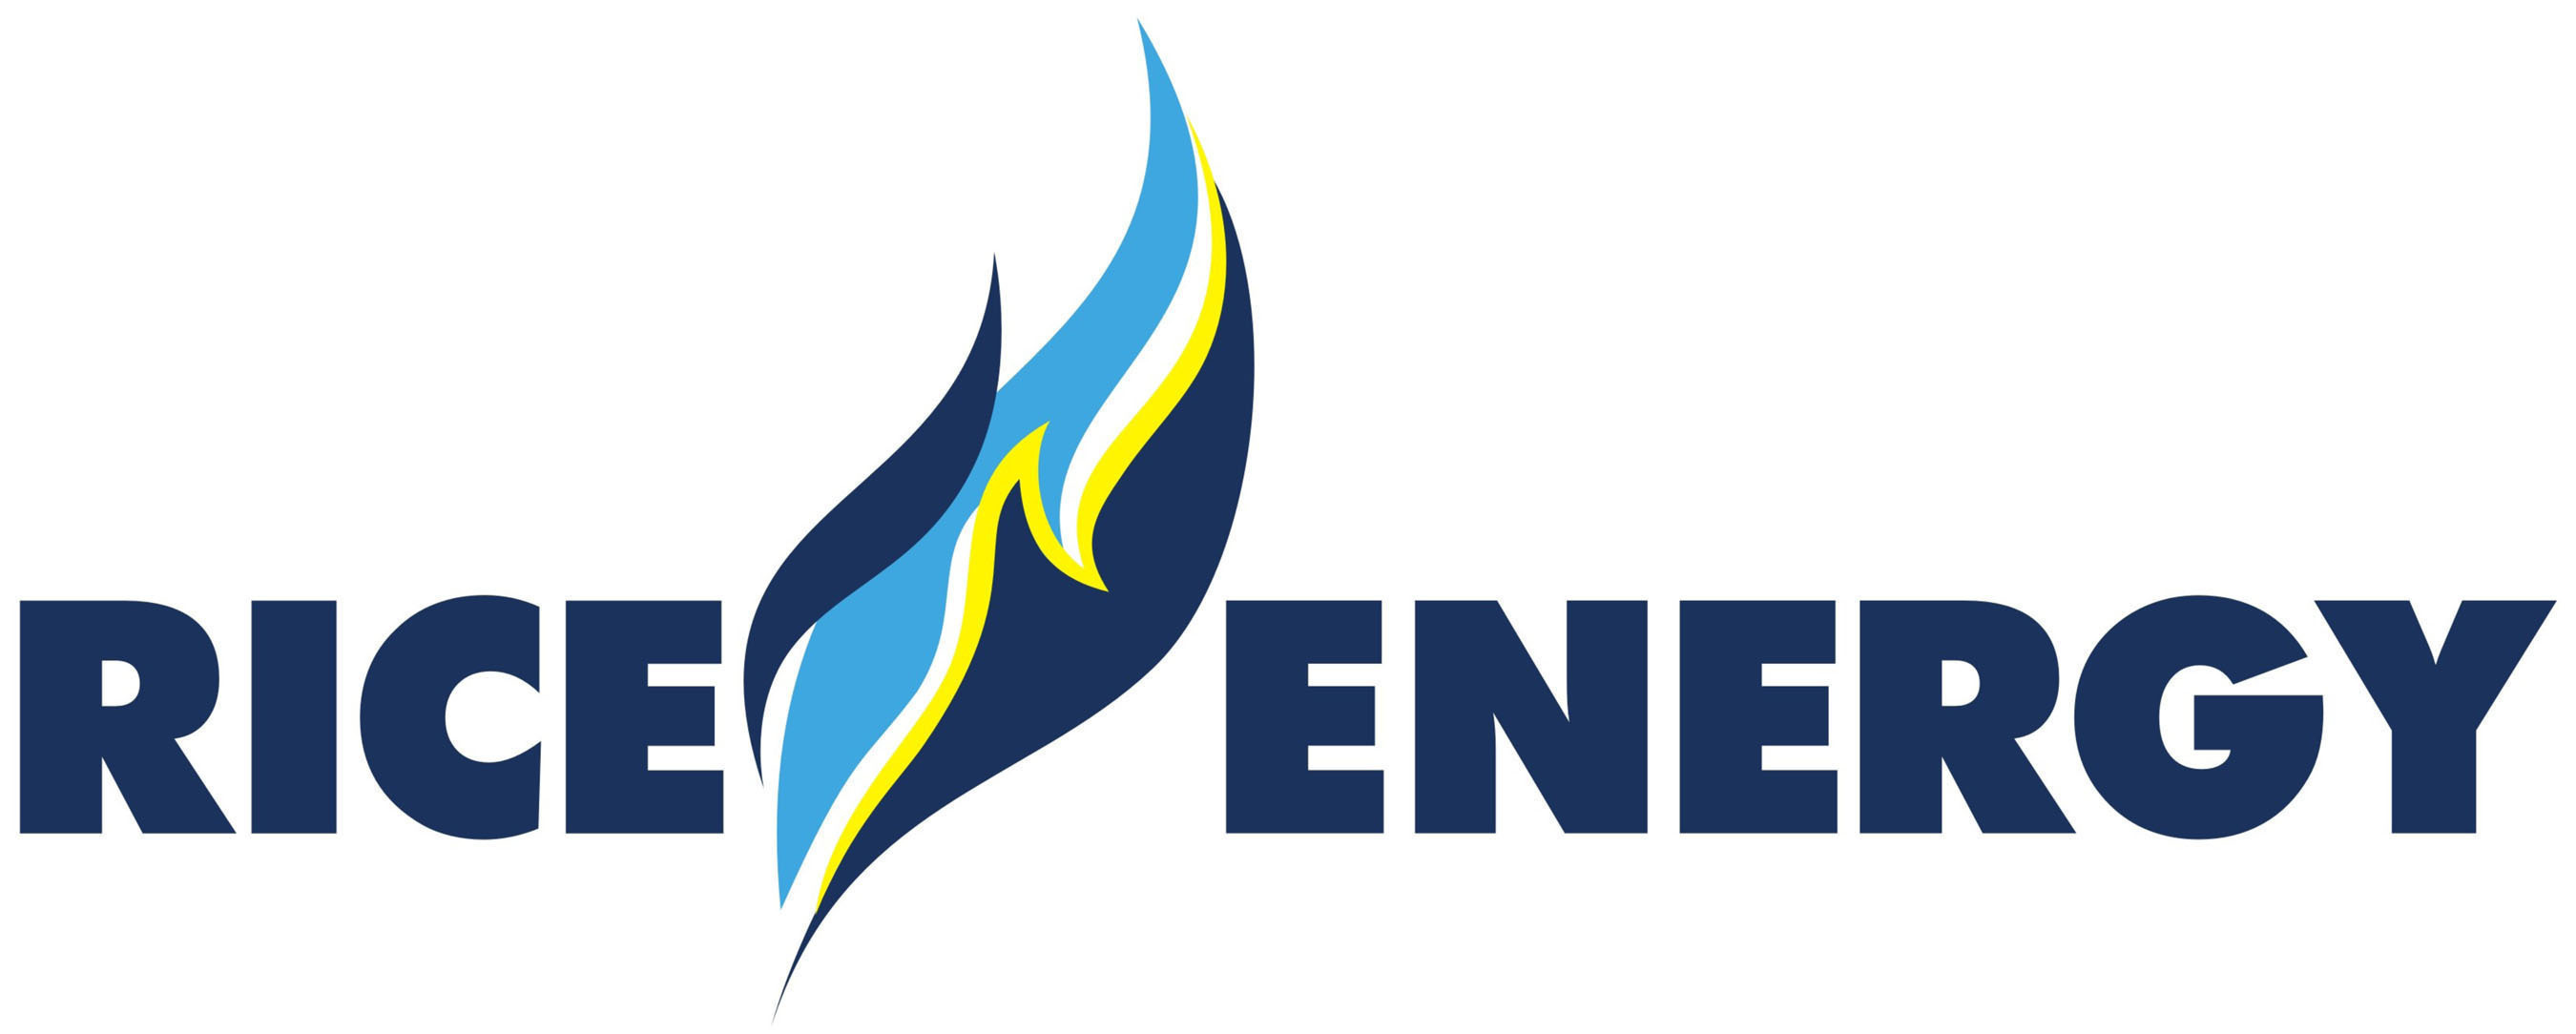 Rice Energy Announces Date for Second Quarter 2015 Earnings Conference Call